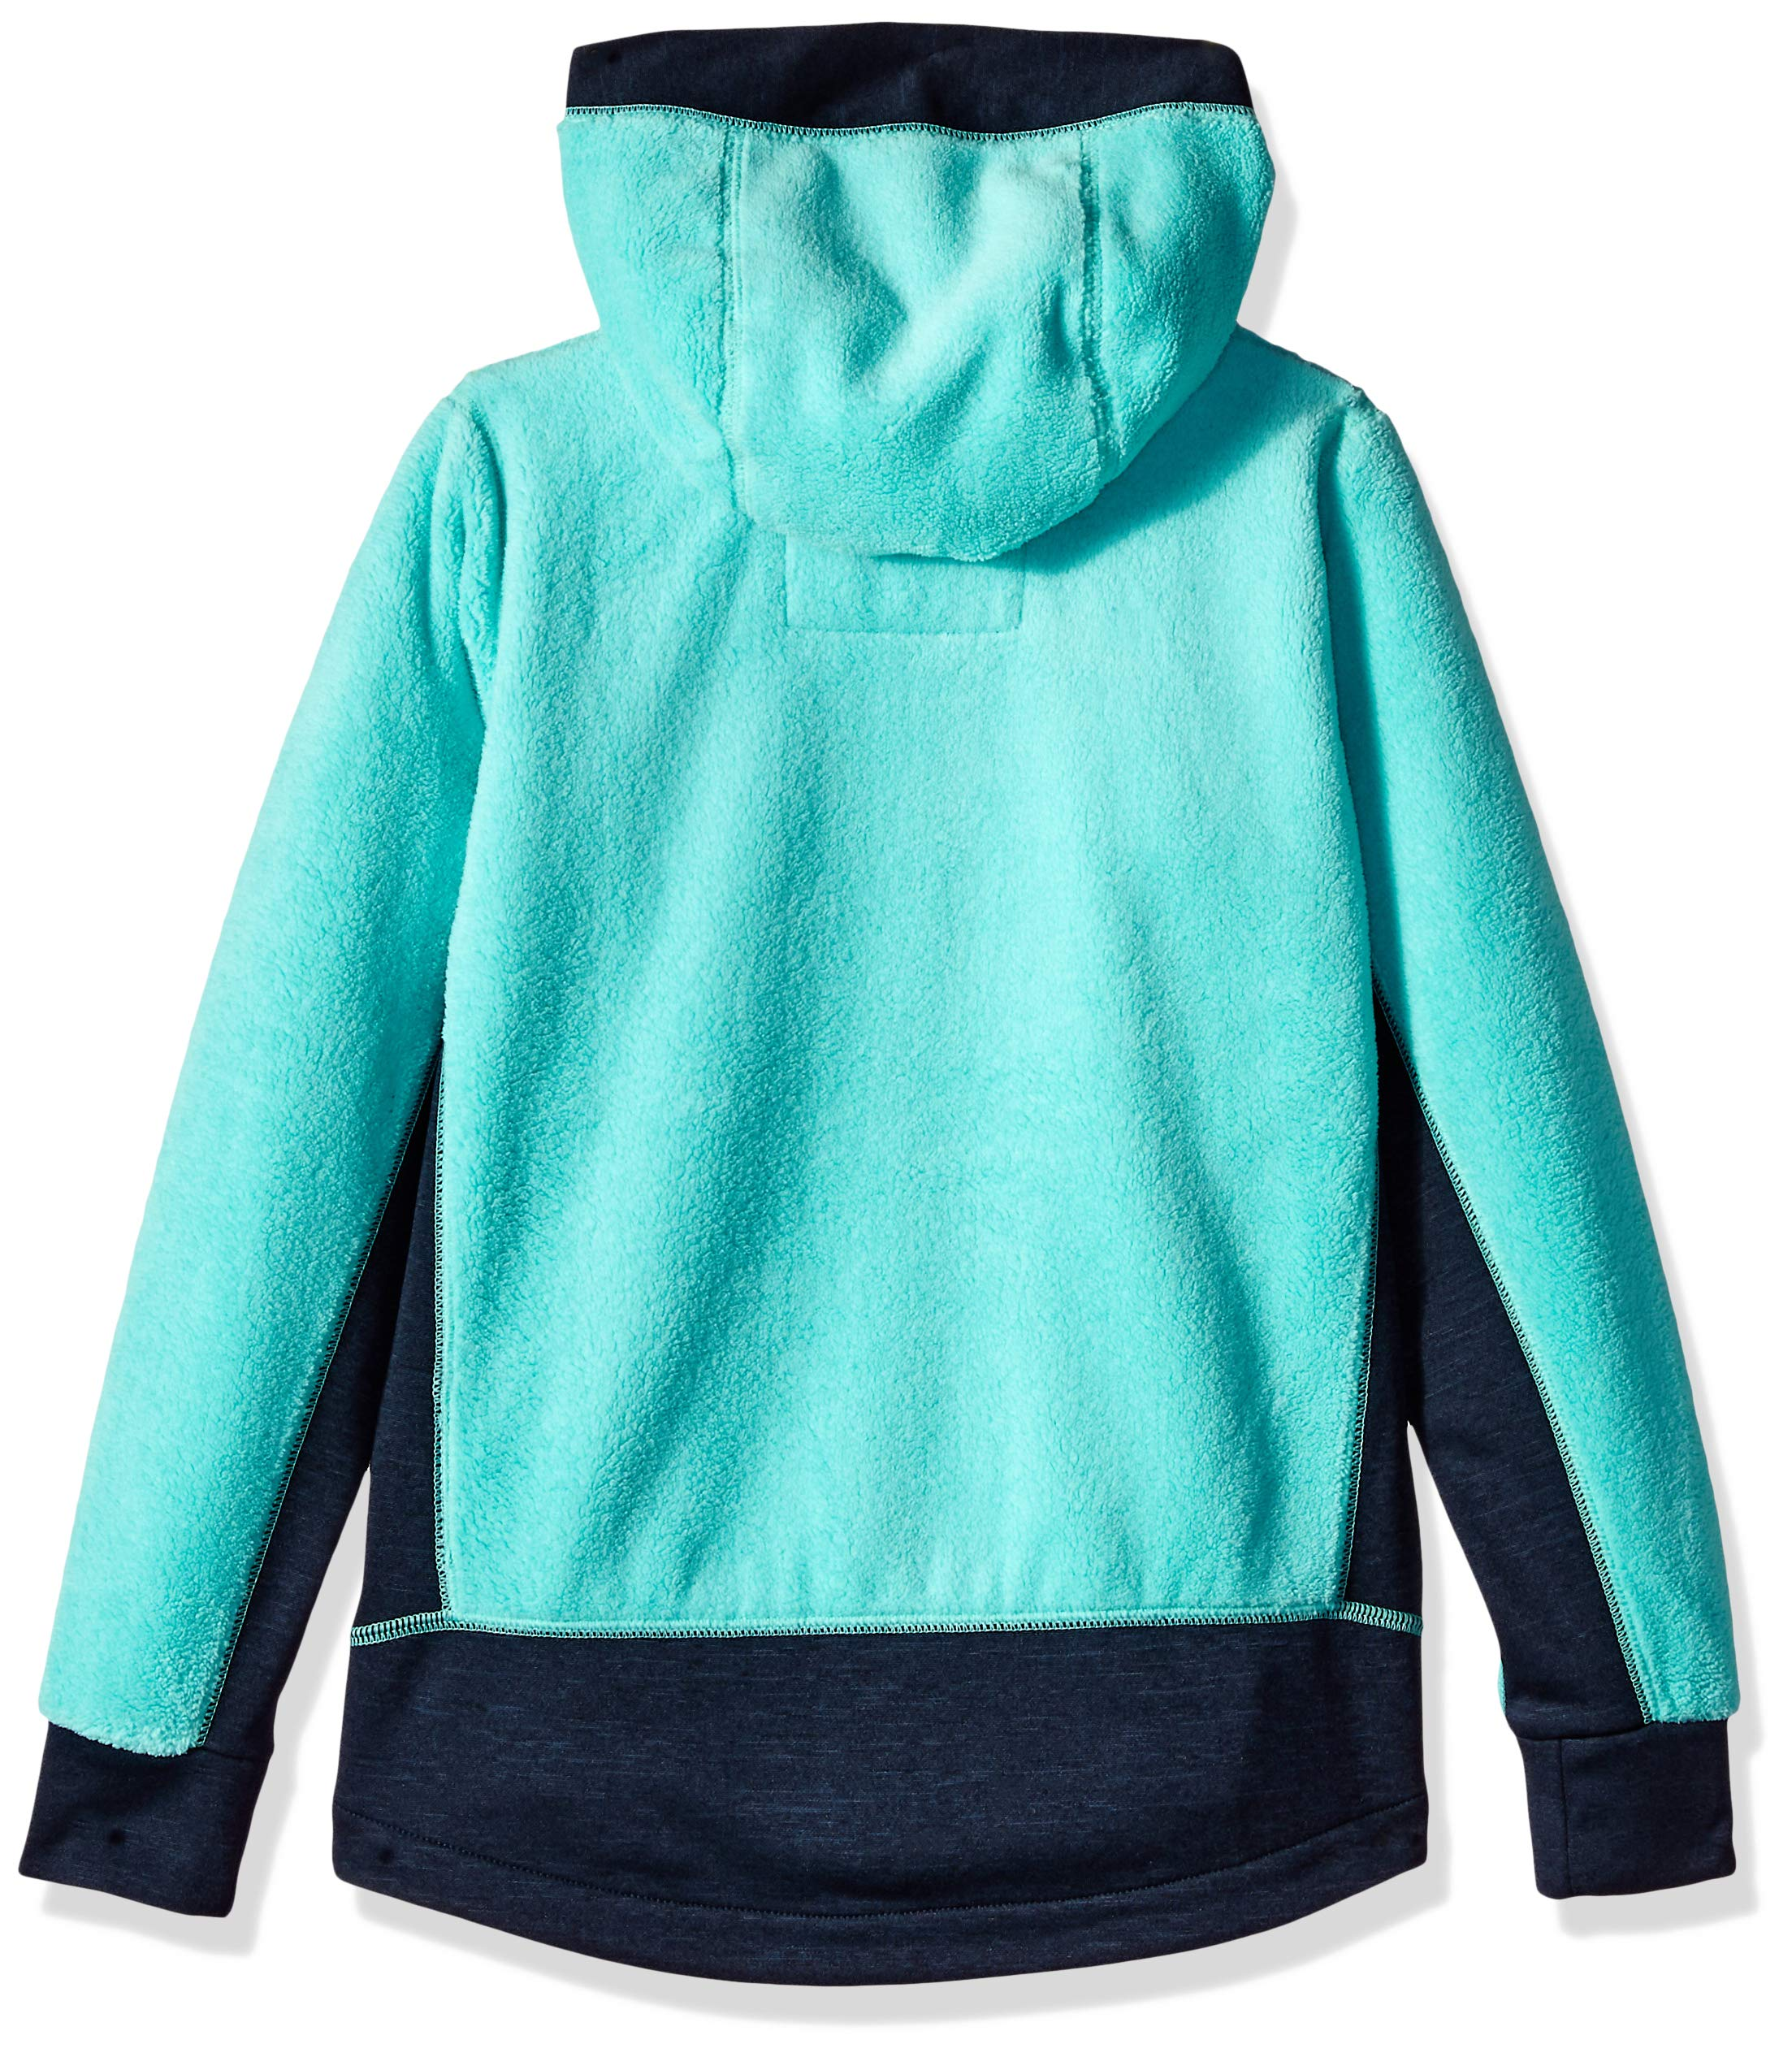 Helly Hansen Jr Chill Full-Zip Hoodie, Pool Blue, Size 16 by Helly Hansen (Image #2)